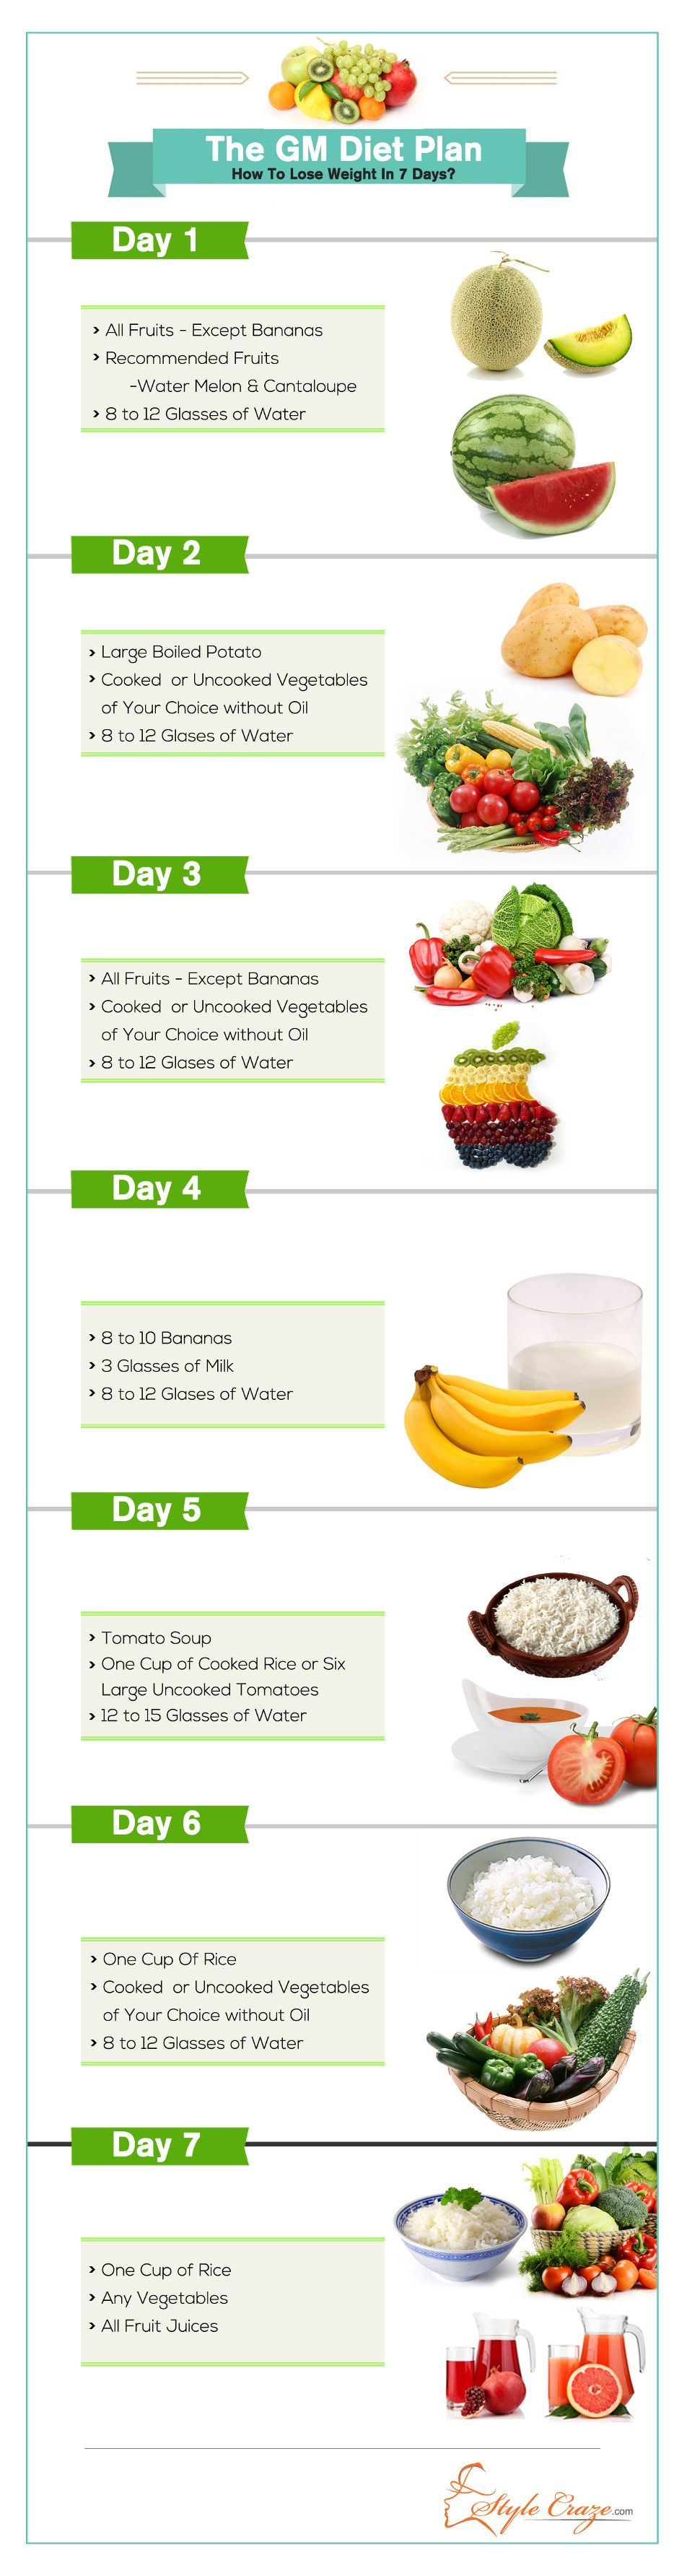 The GM Diet Plan: How To Lose Weight In Just 7 Days | Gm ...